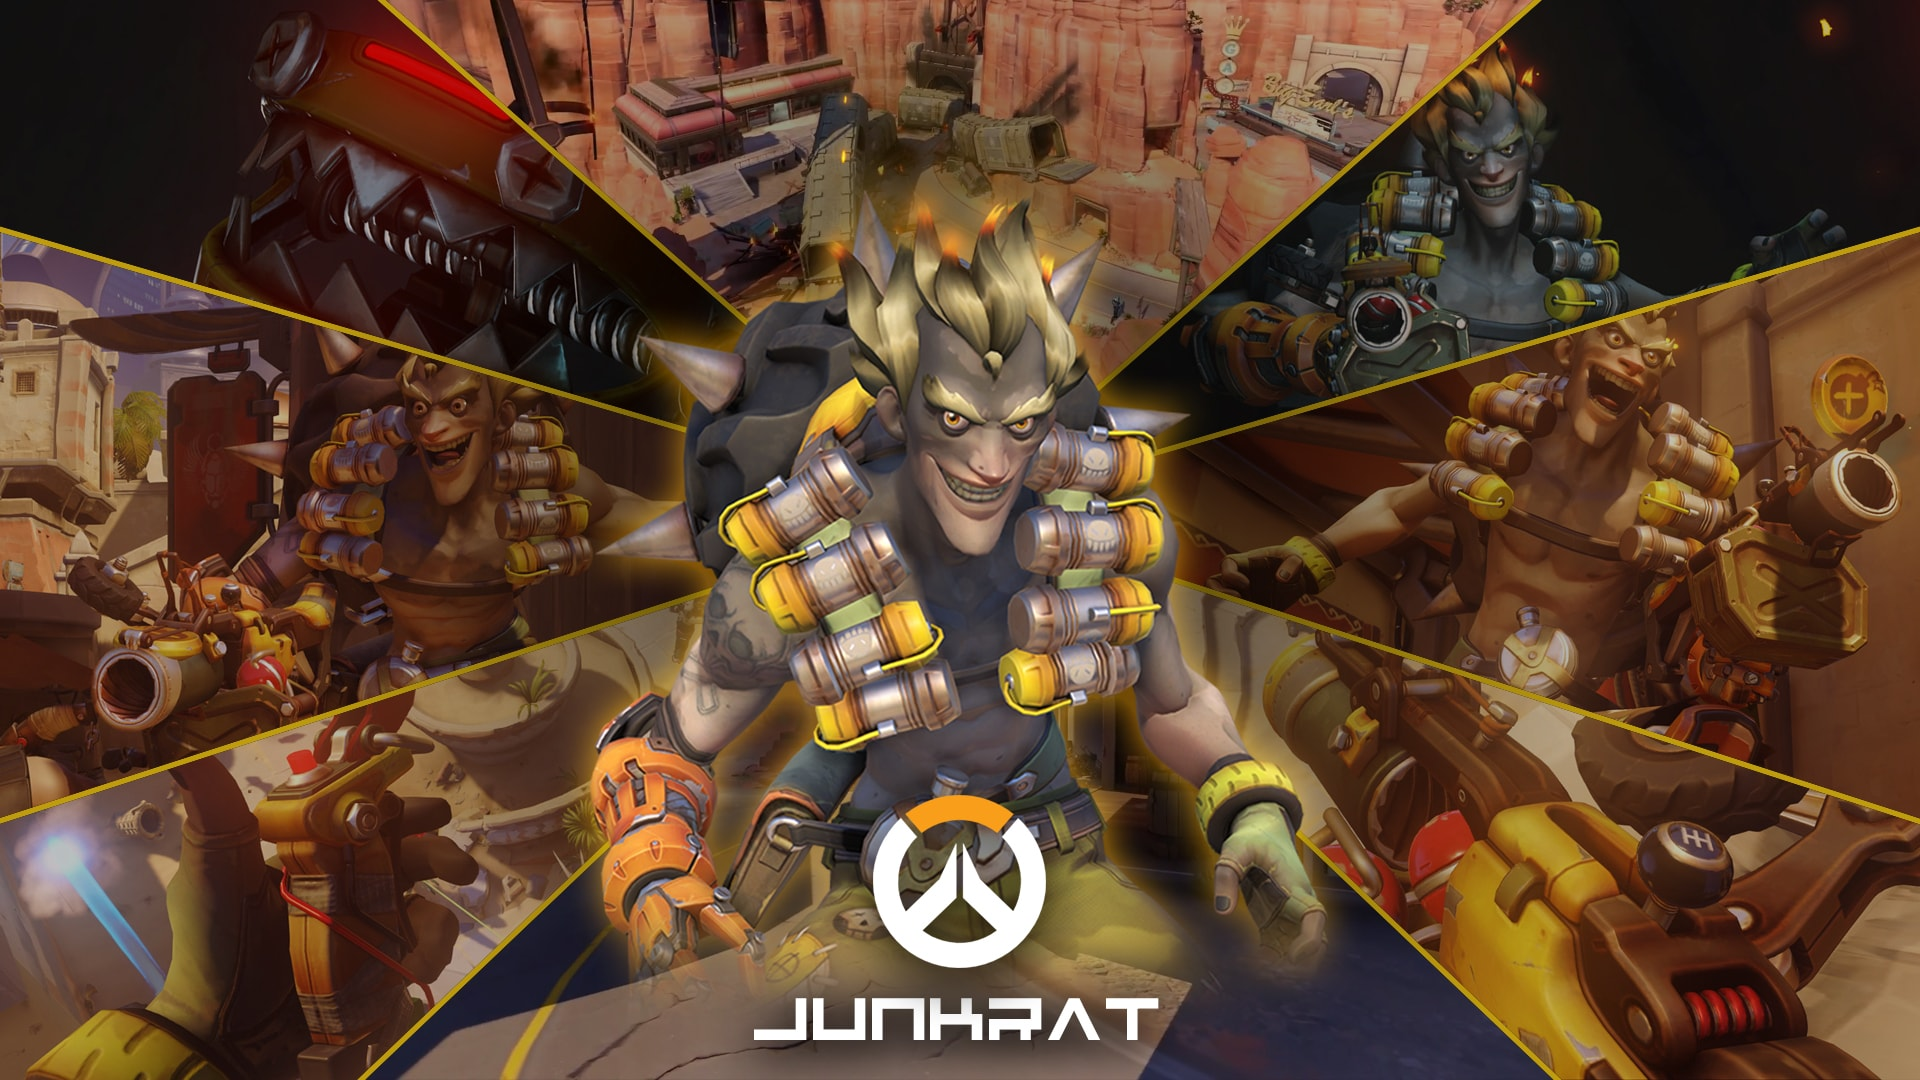 Overwatch Junkrat Hd Wallpapers 7wallpapersnet